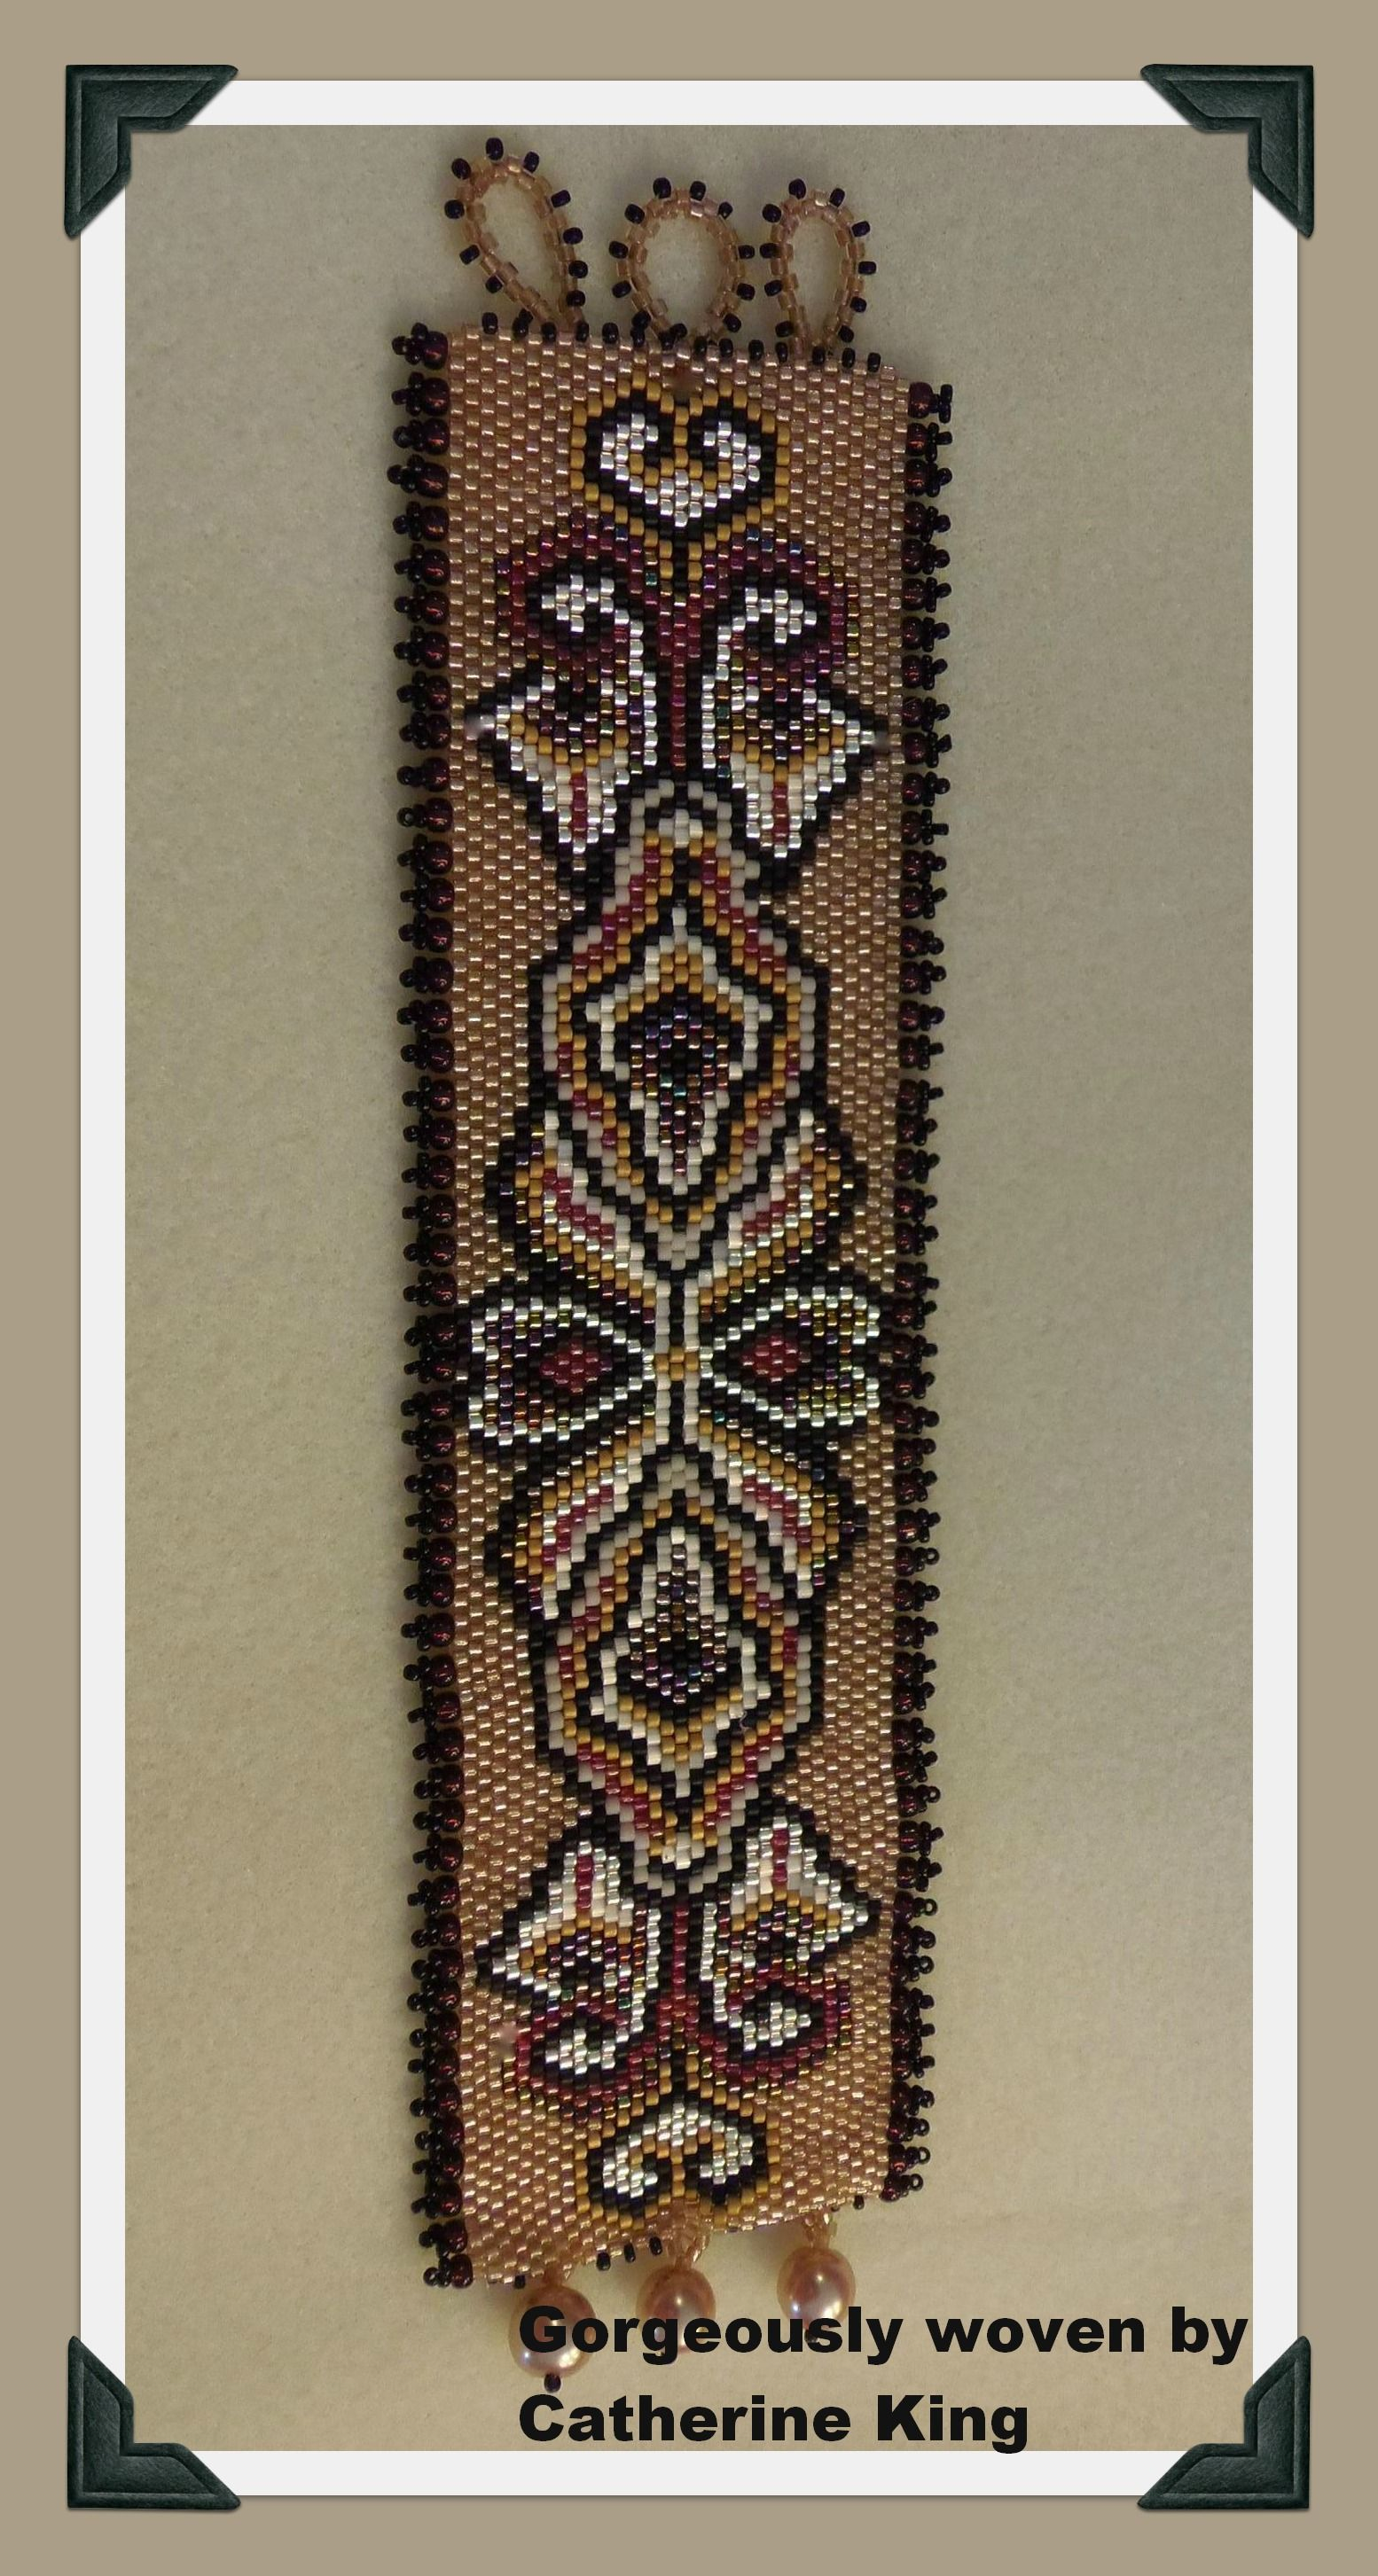 http://cart.javallebeads.com/Elly-Double-Take-2-Digital-Pattern-p/td026.htm